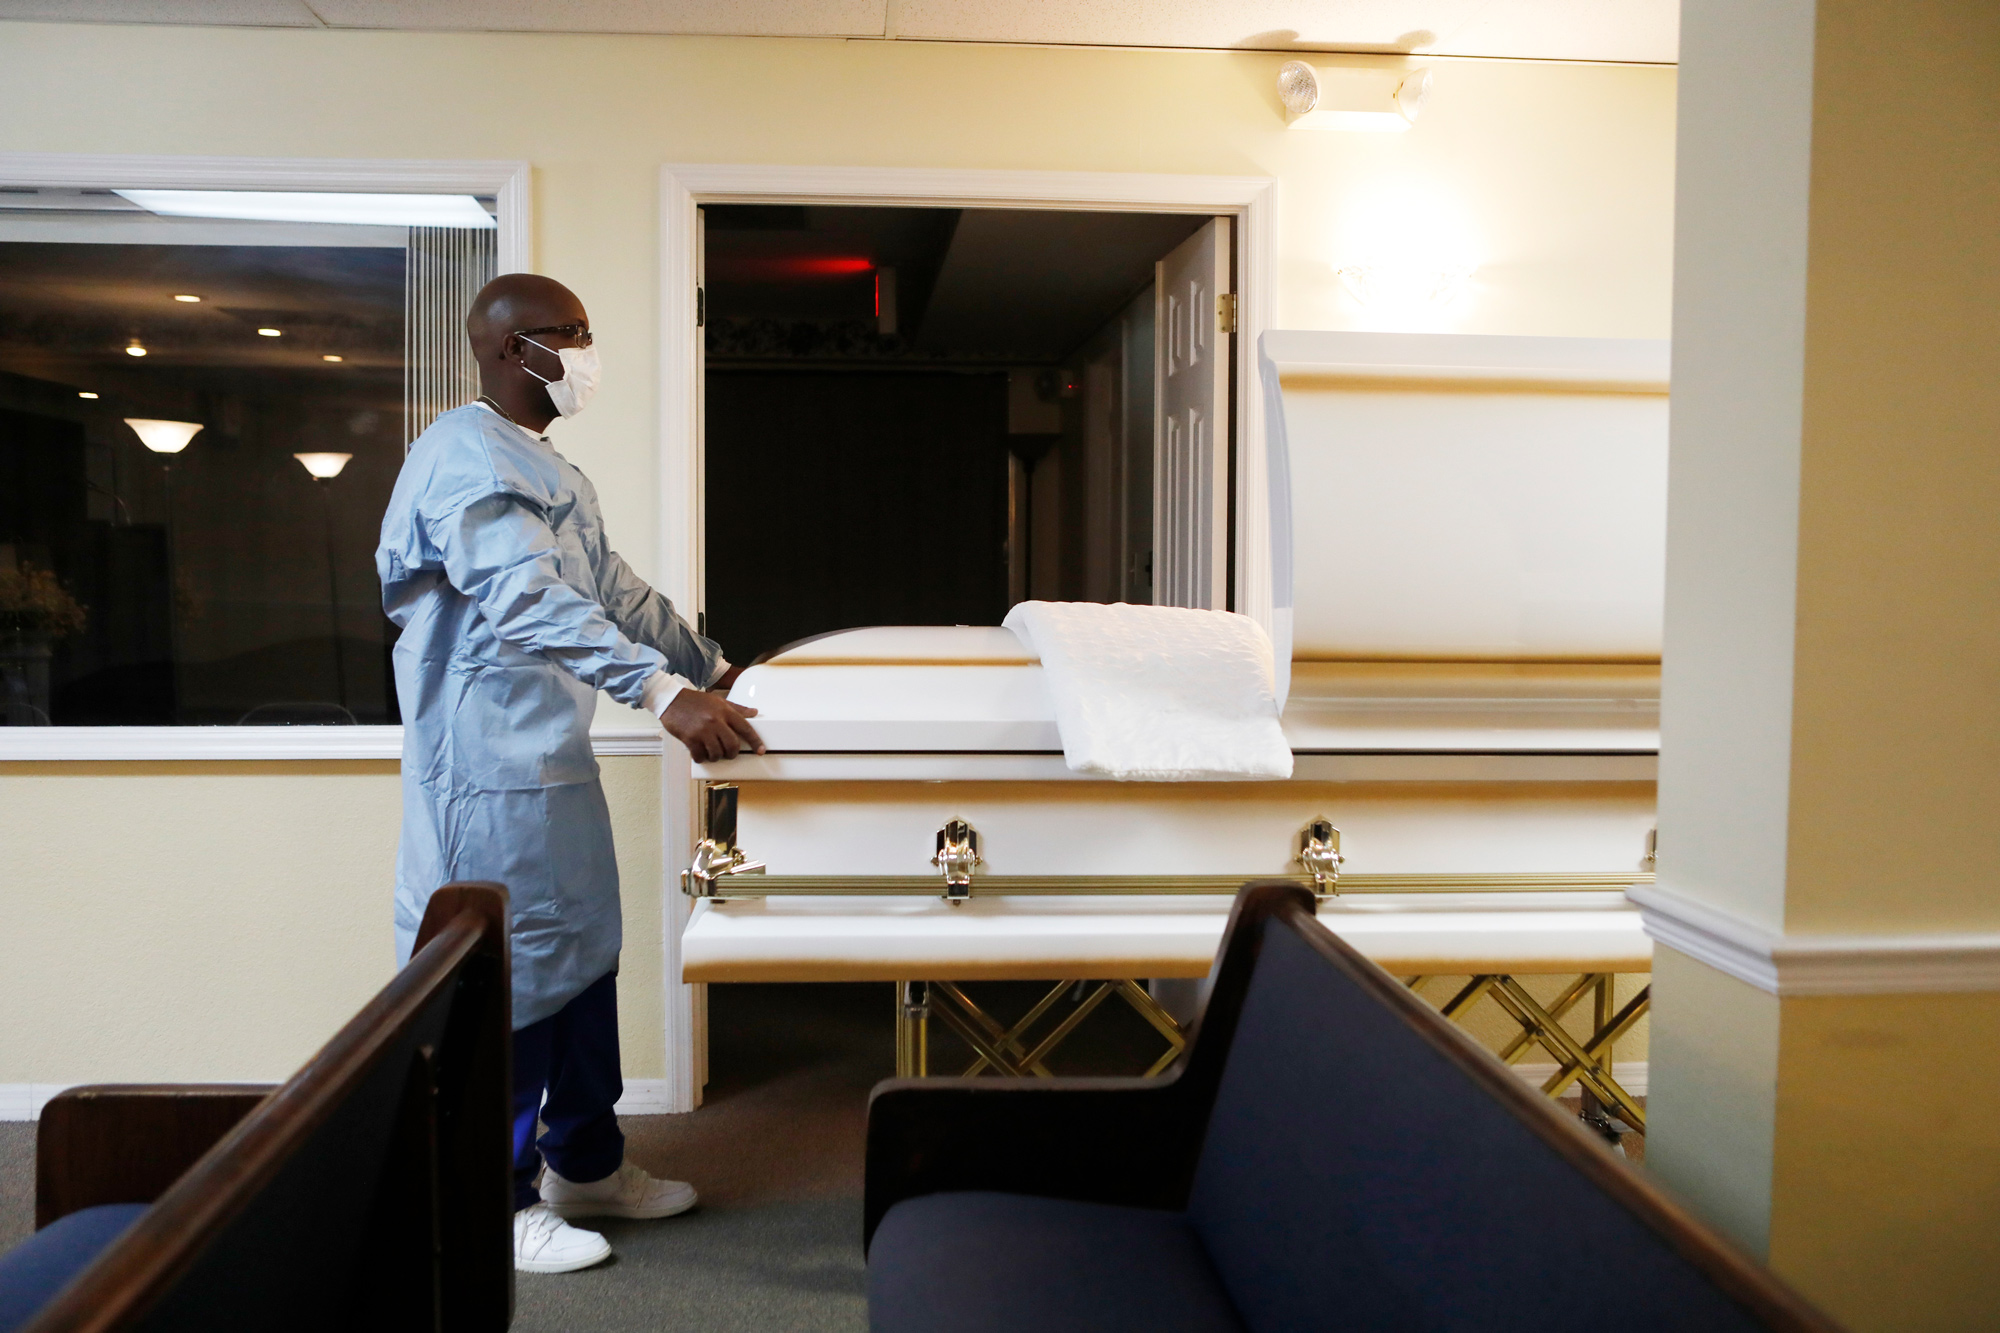 A mortician assistant prepares a funeral service for a man who died of COVID-19 at Ray Williams Funeral Home on August 12 in Tampa, Florida.